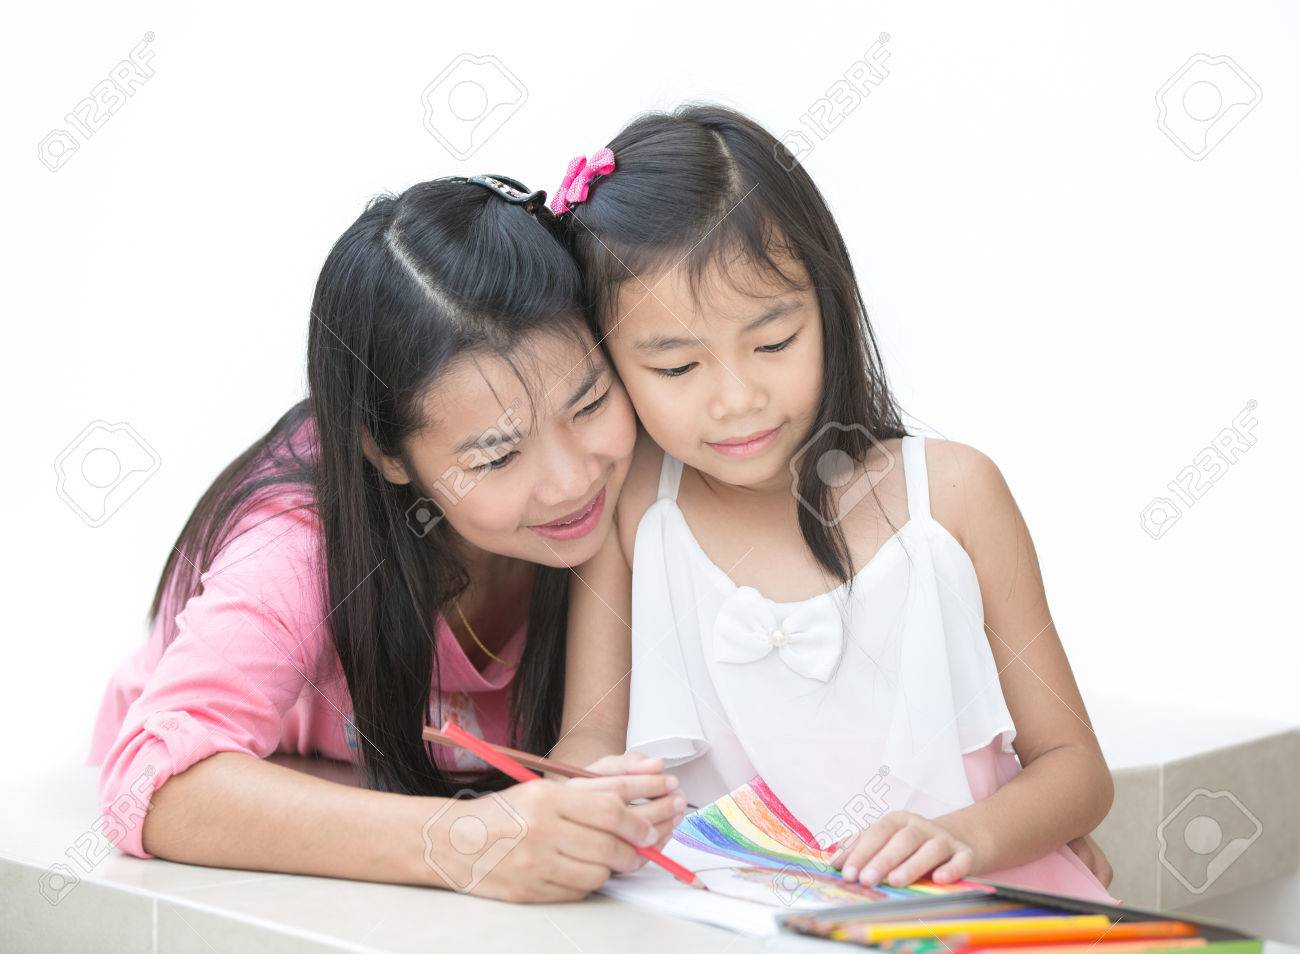 Mon and girl drawing a home work Standard-Bild - 34219153